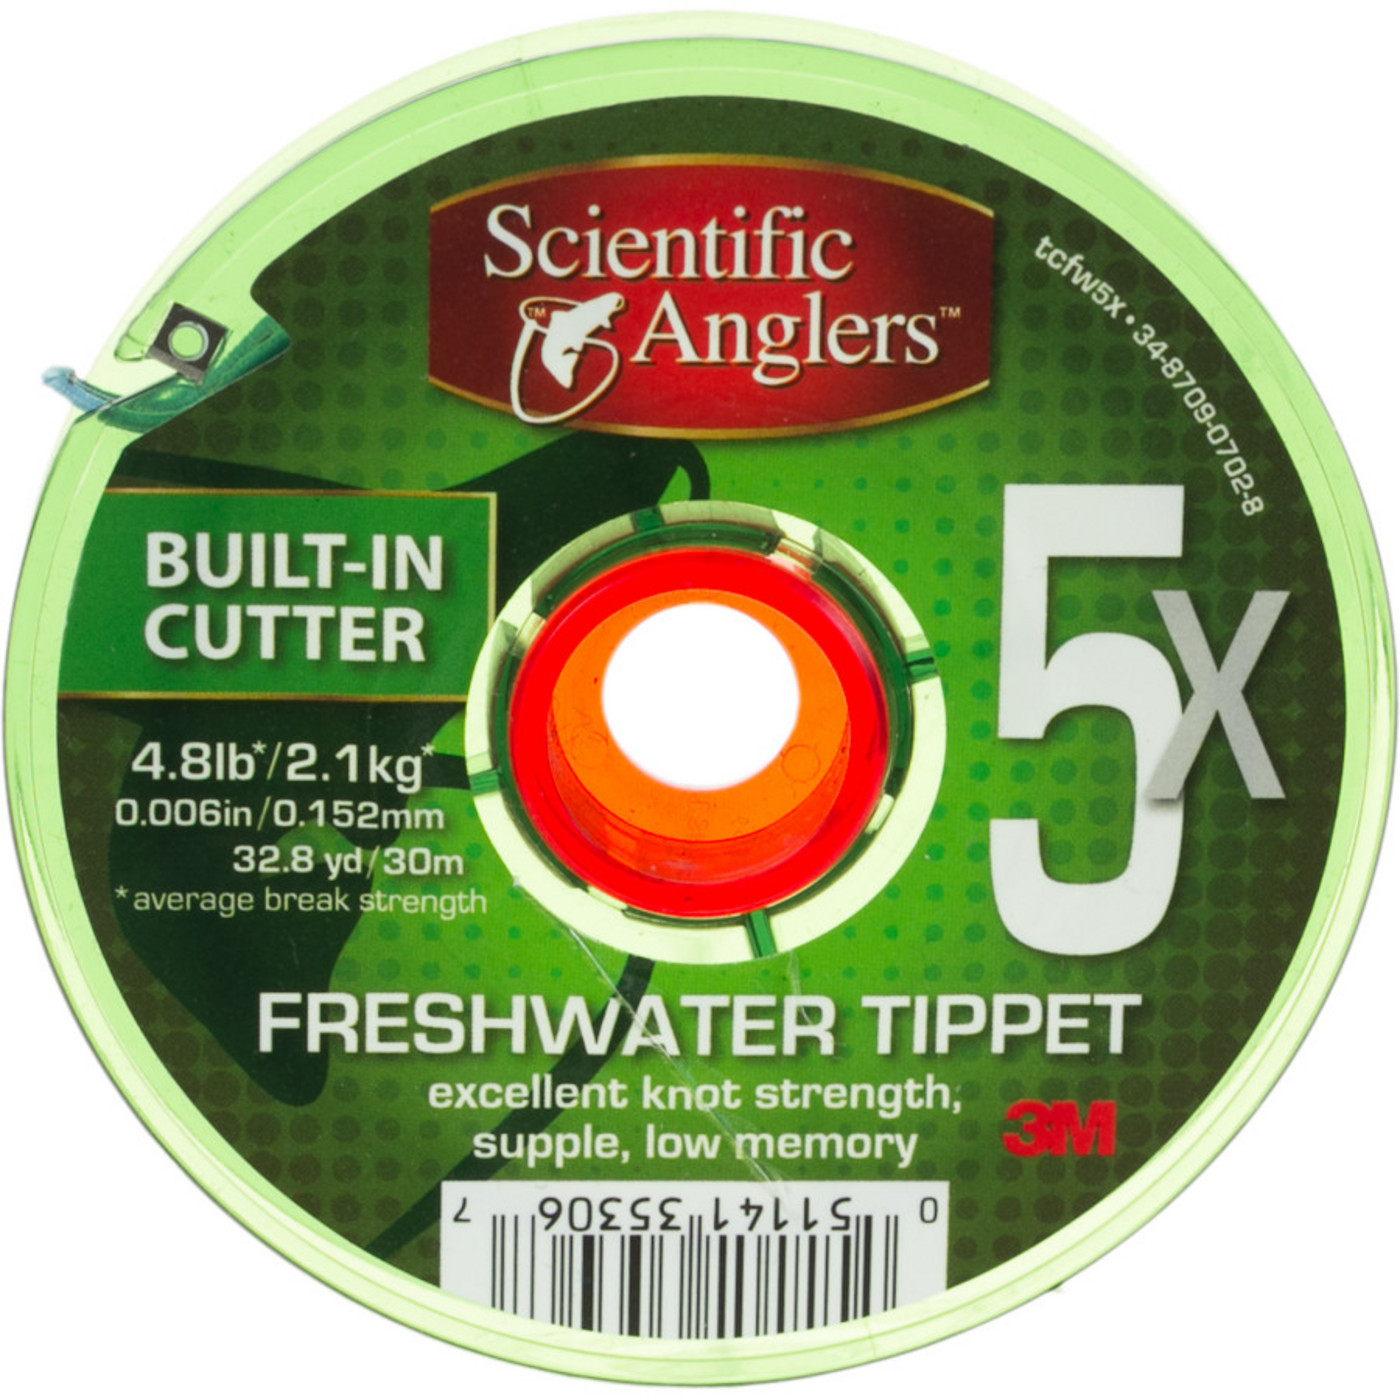 Scientific Anglers Freshwater Tippet 5X